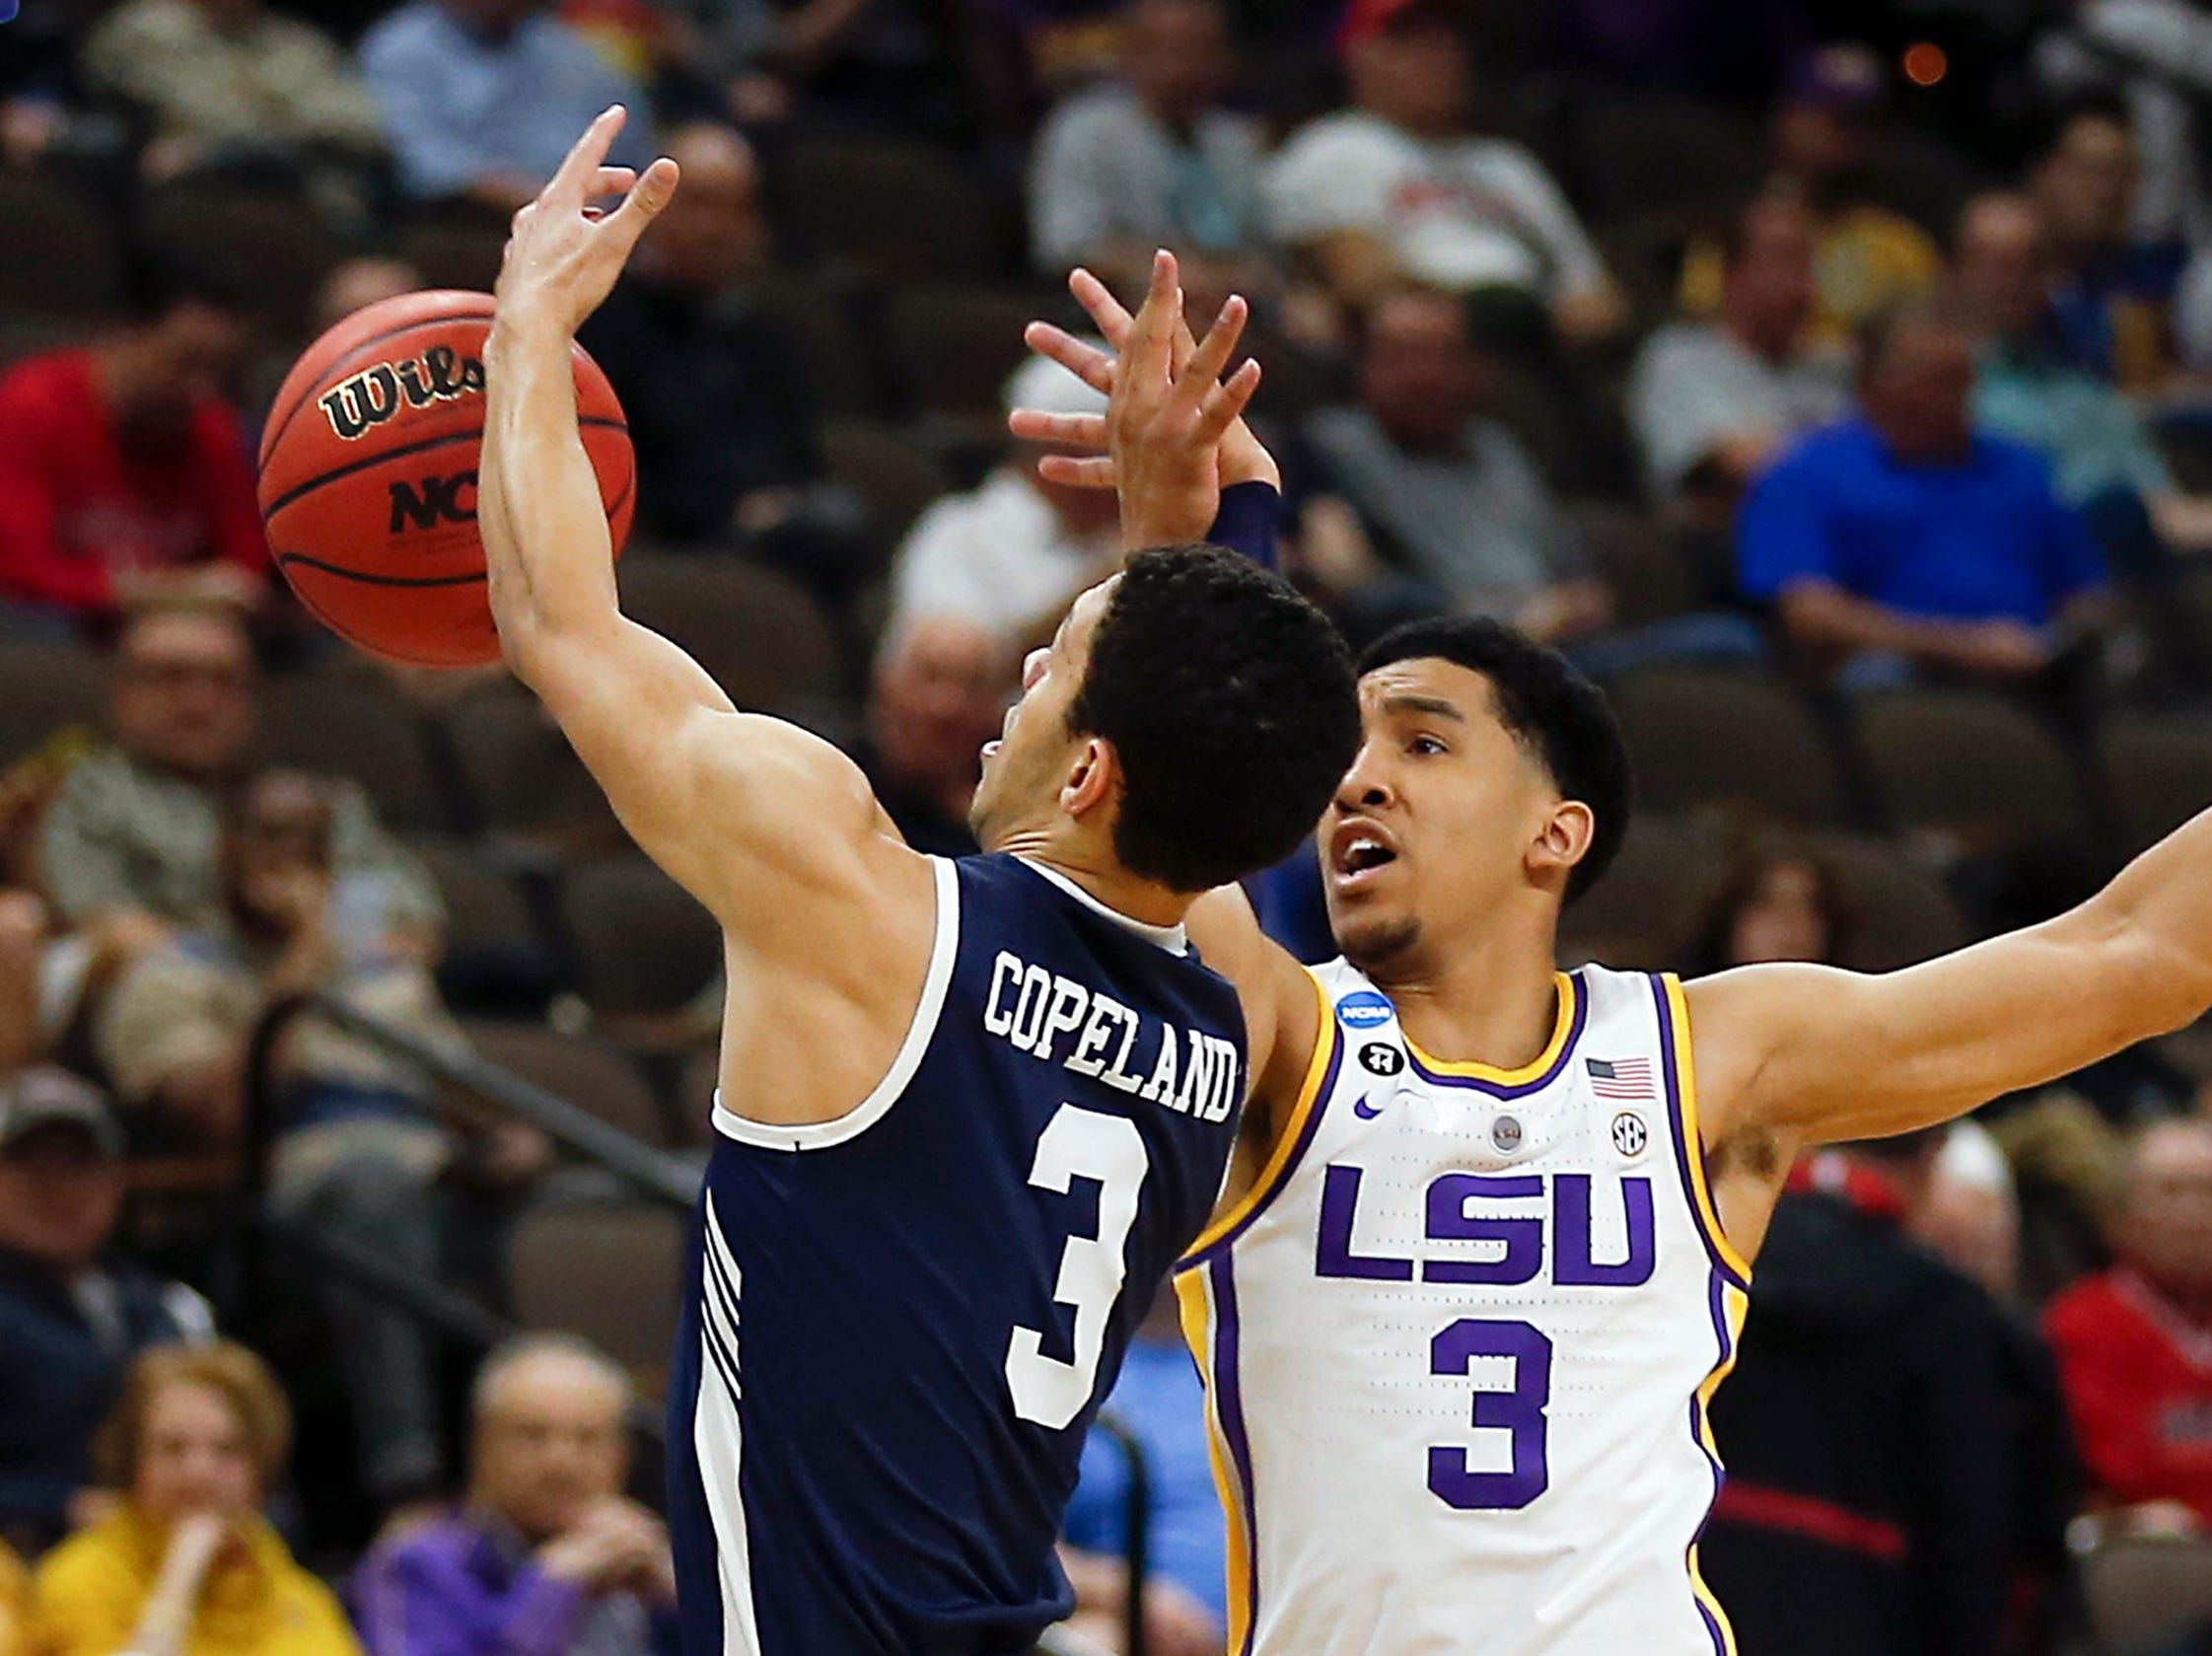 Yale 's Alex Copeland, left, and LSU's Tremont Waters go after a loose ball during the first half of a first round men's college basketball game in the NCAA Tournament, in Jacksonville, Fla. Thursday, March 21, 2019. (AP Photo/Stephen B. Morton)